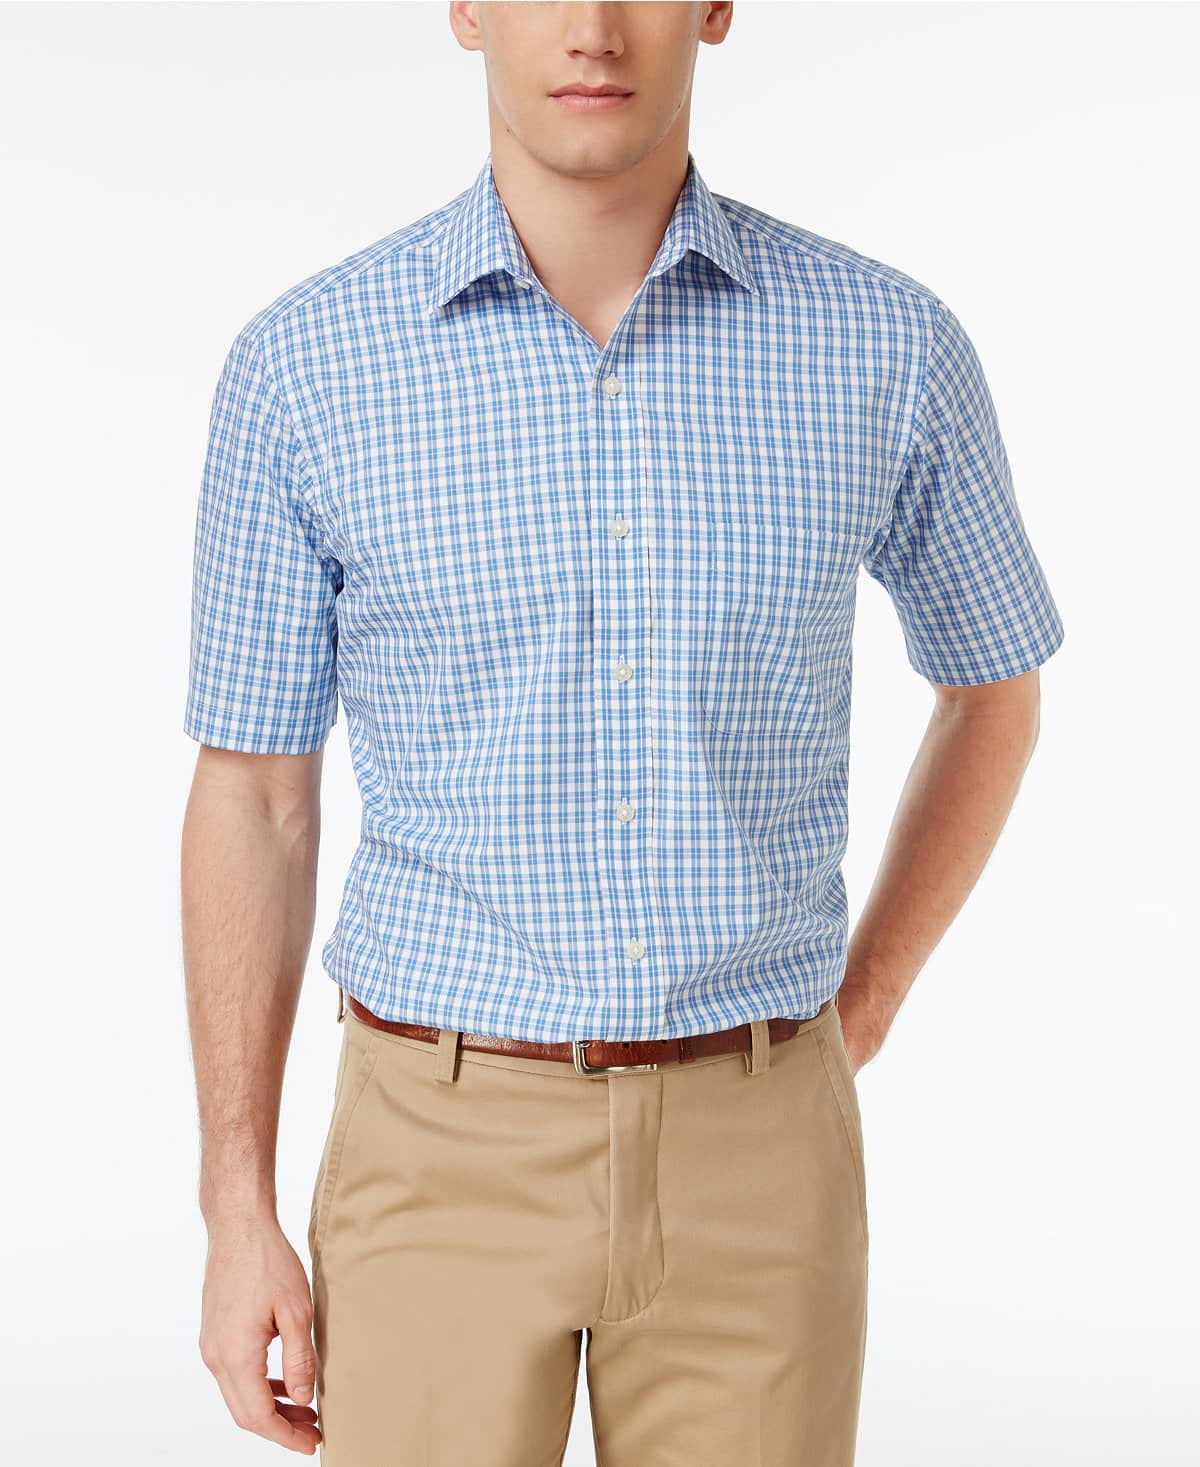 Macy's Dress Shirt Sale - up to 70% off plus 30% off with code FRIEND $15.93